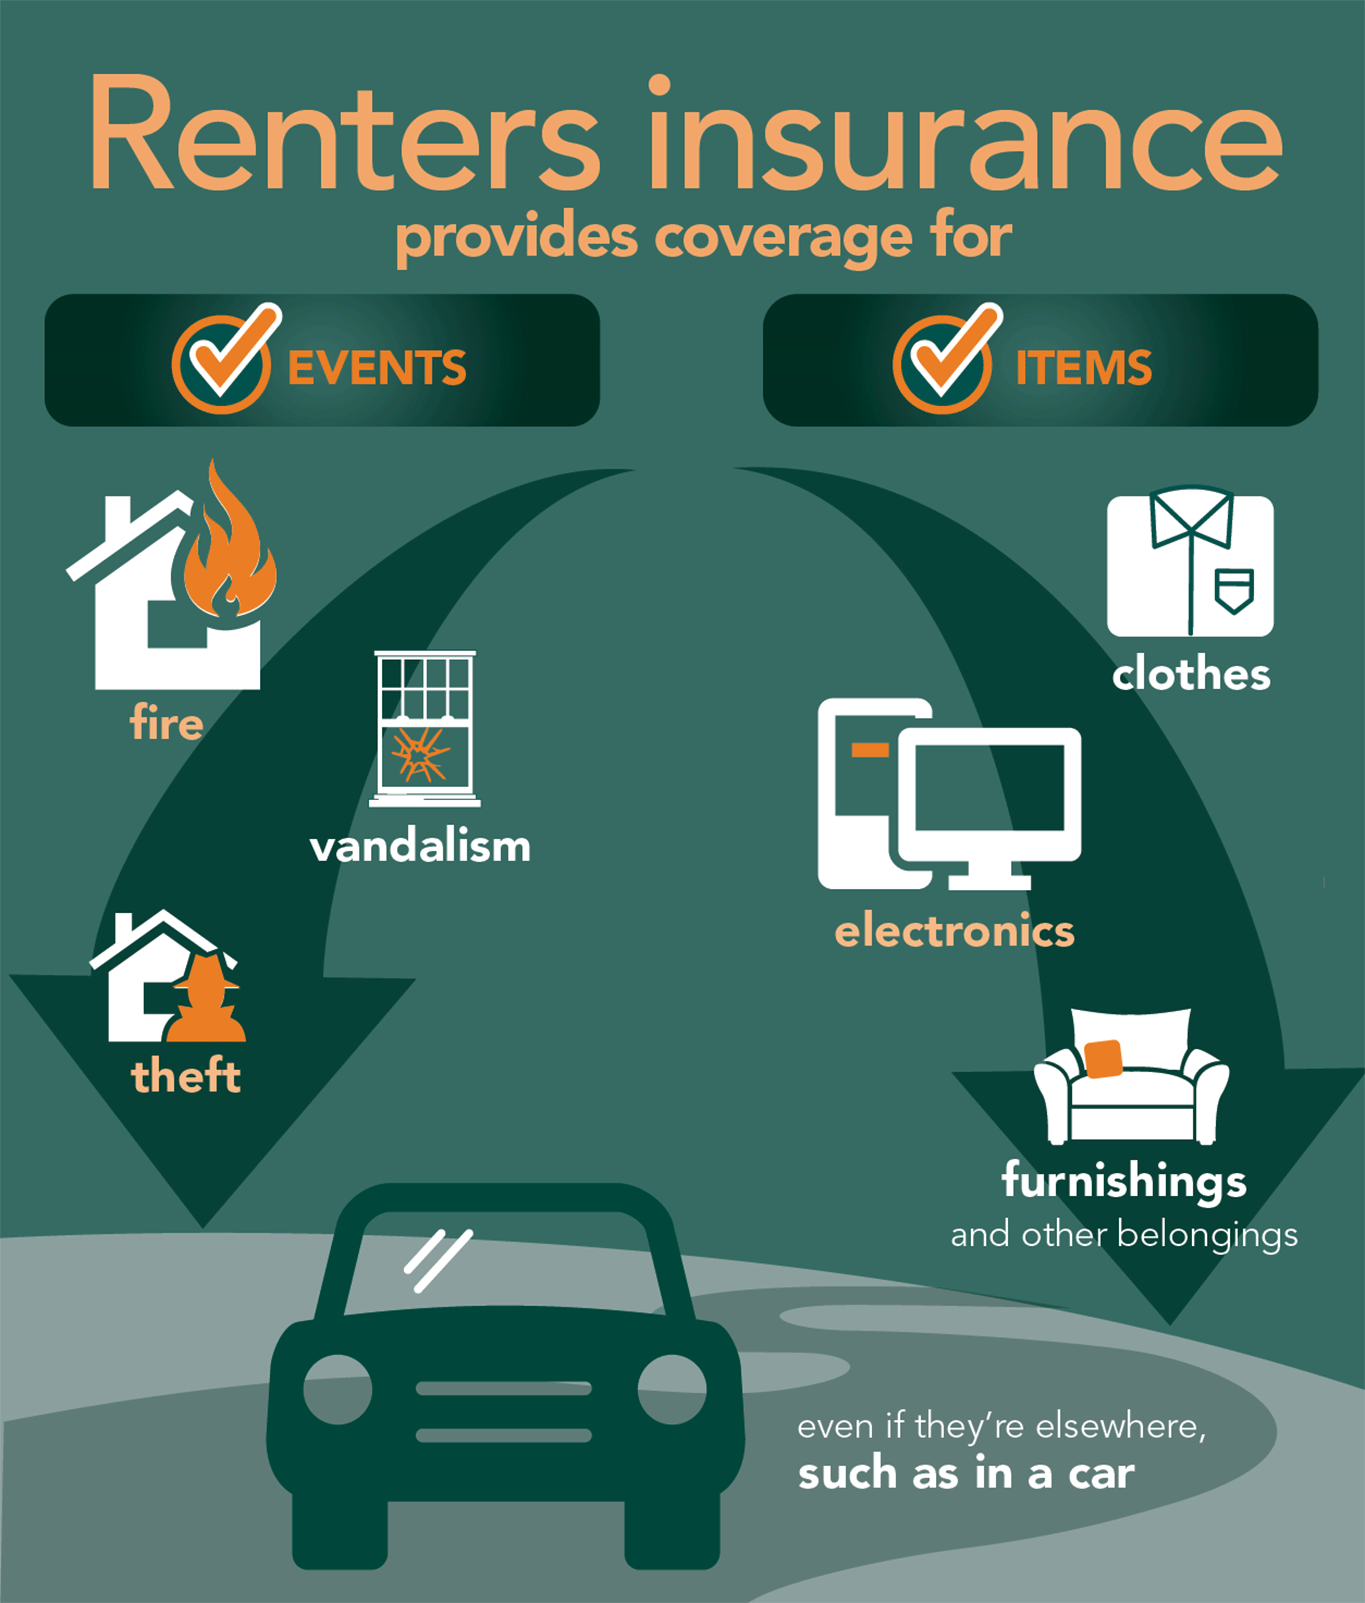 Renters insurance provides coverage for fire vandalism and theft: Also covers belongings even if they're elsewhere like a car